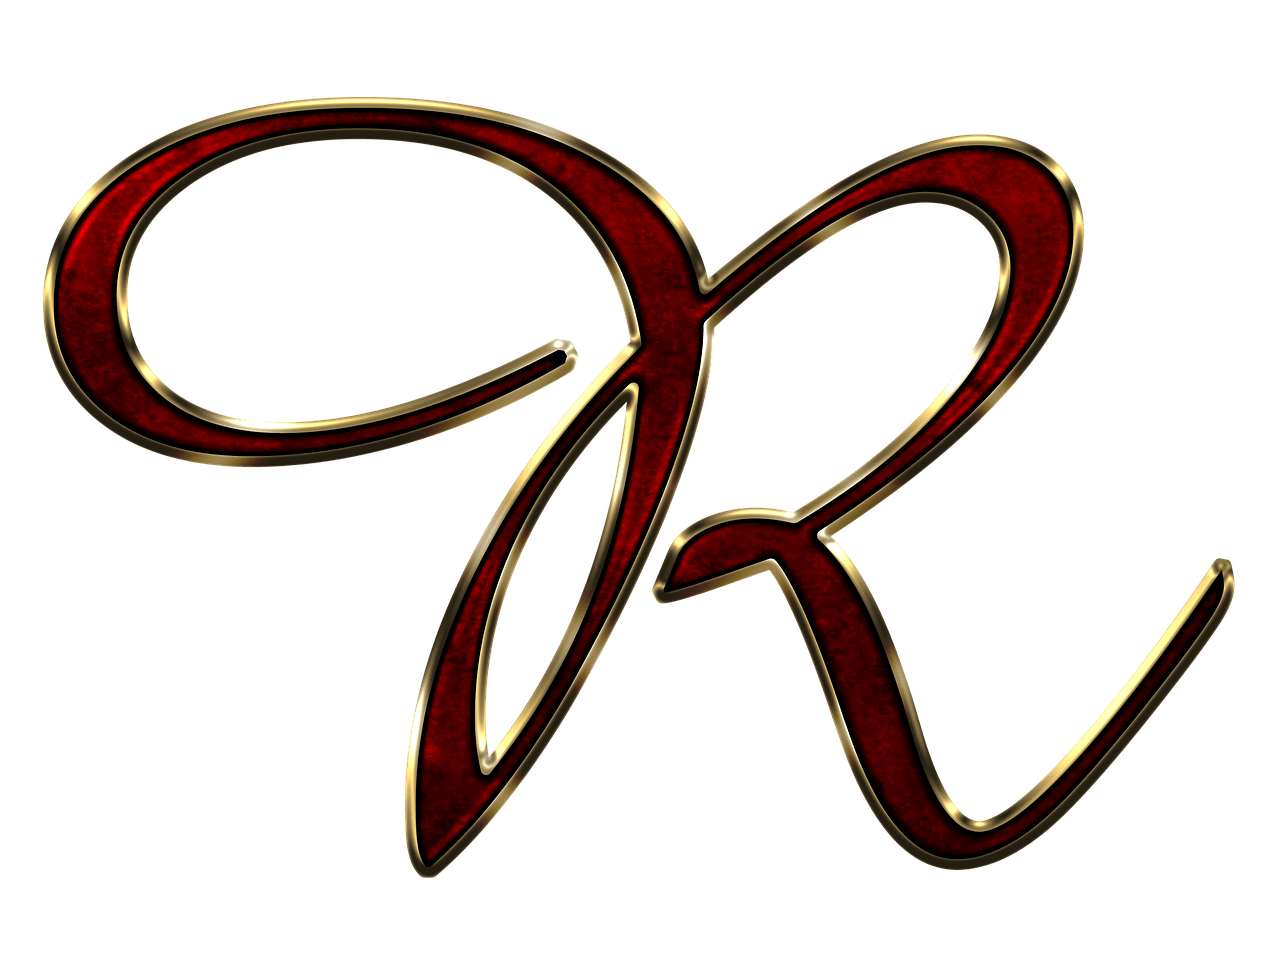 R clipart red. Capital letter transparent png